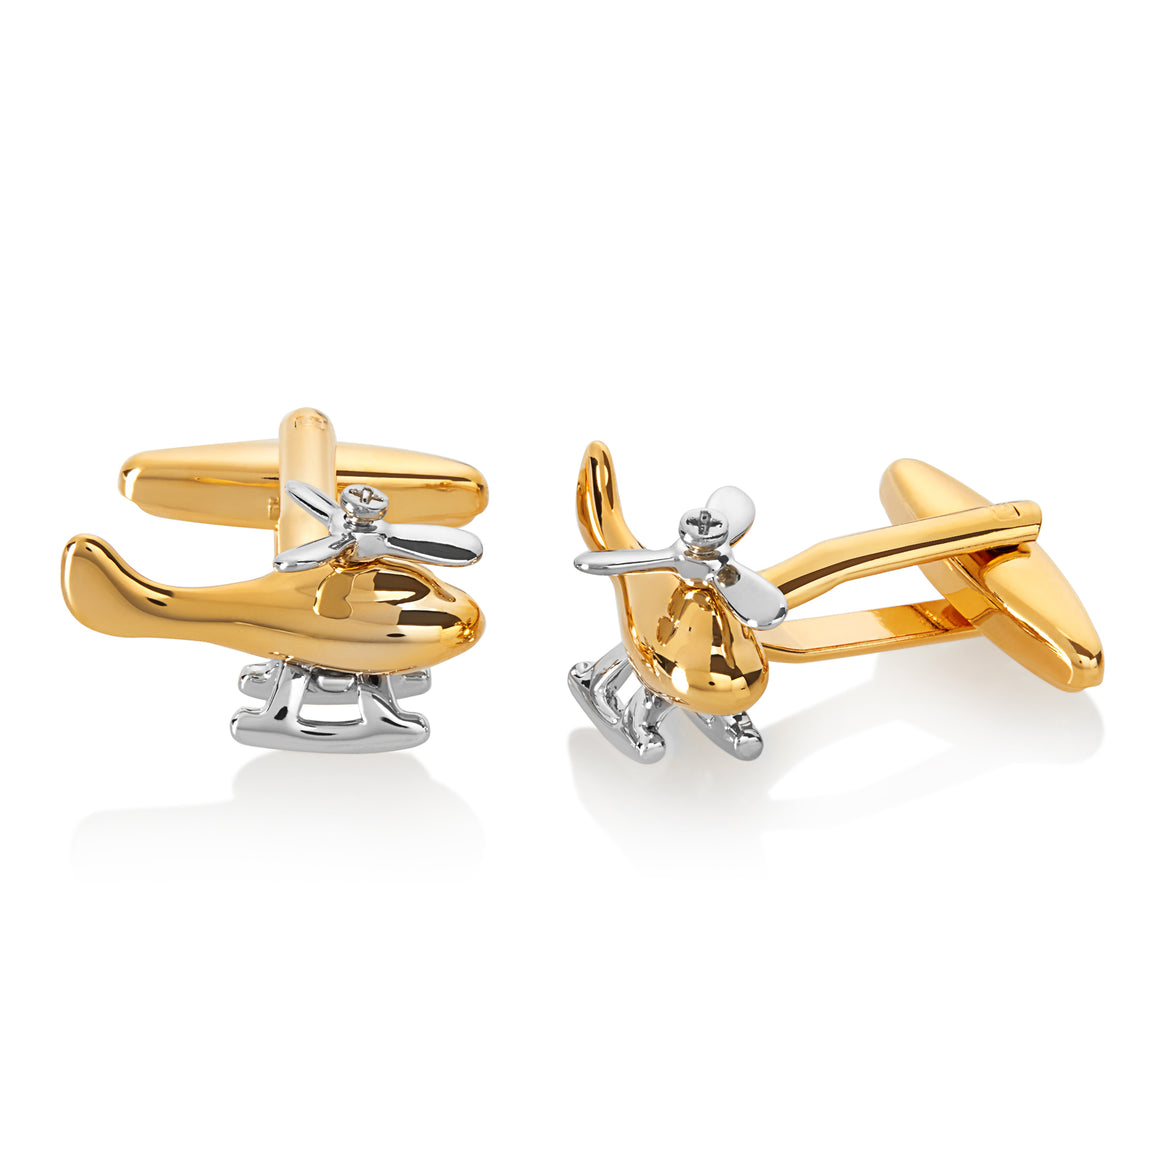 Crucible Men's Two-Tone High Polished Helicopter Spinning Propeller Cuff Links